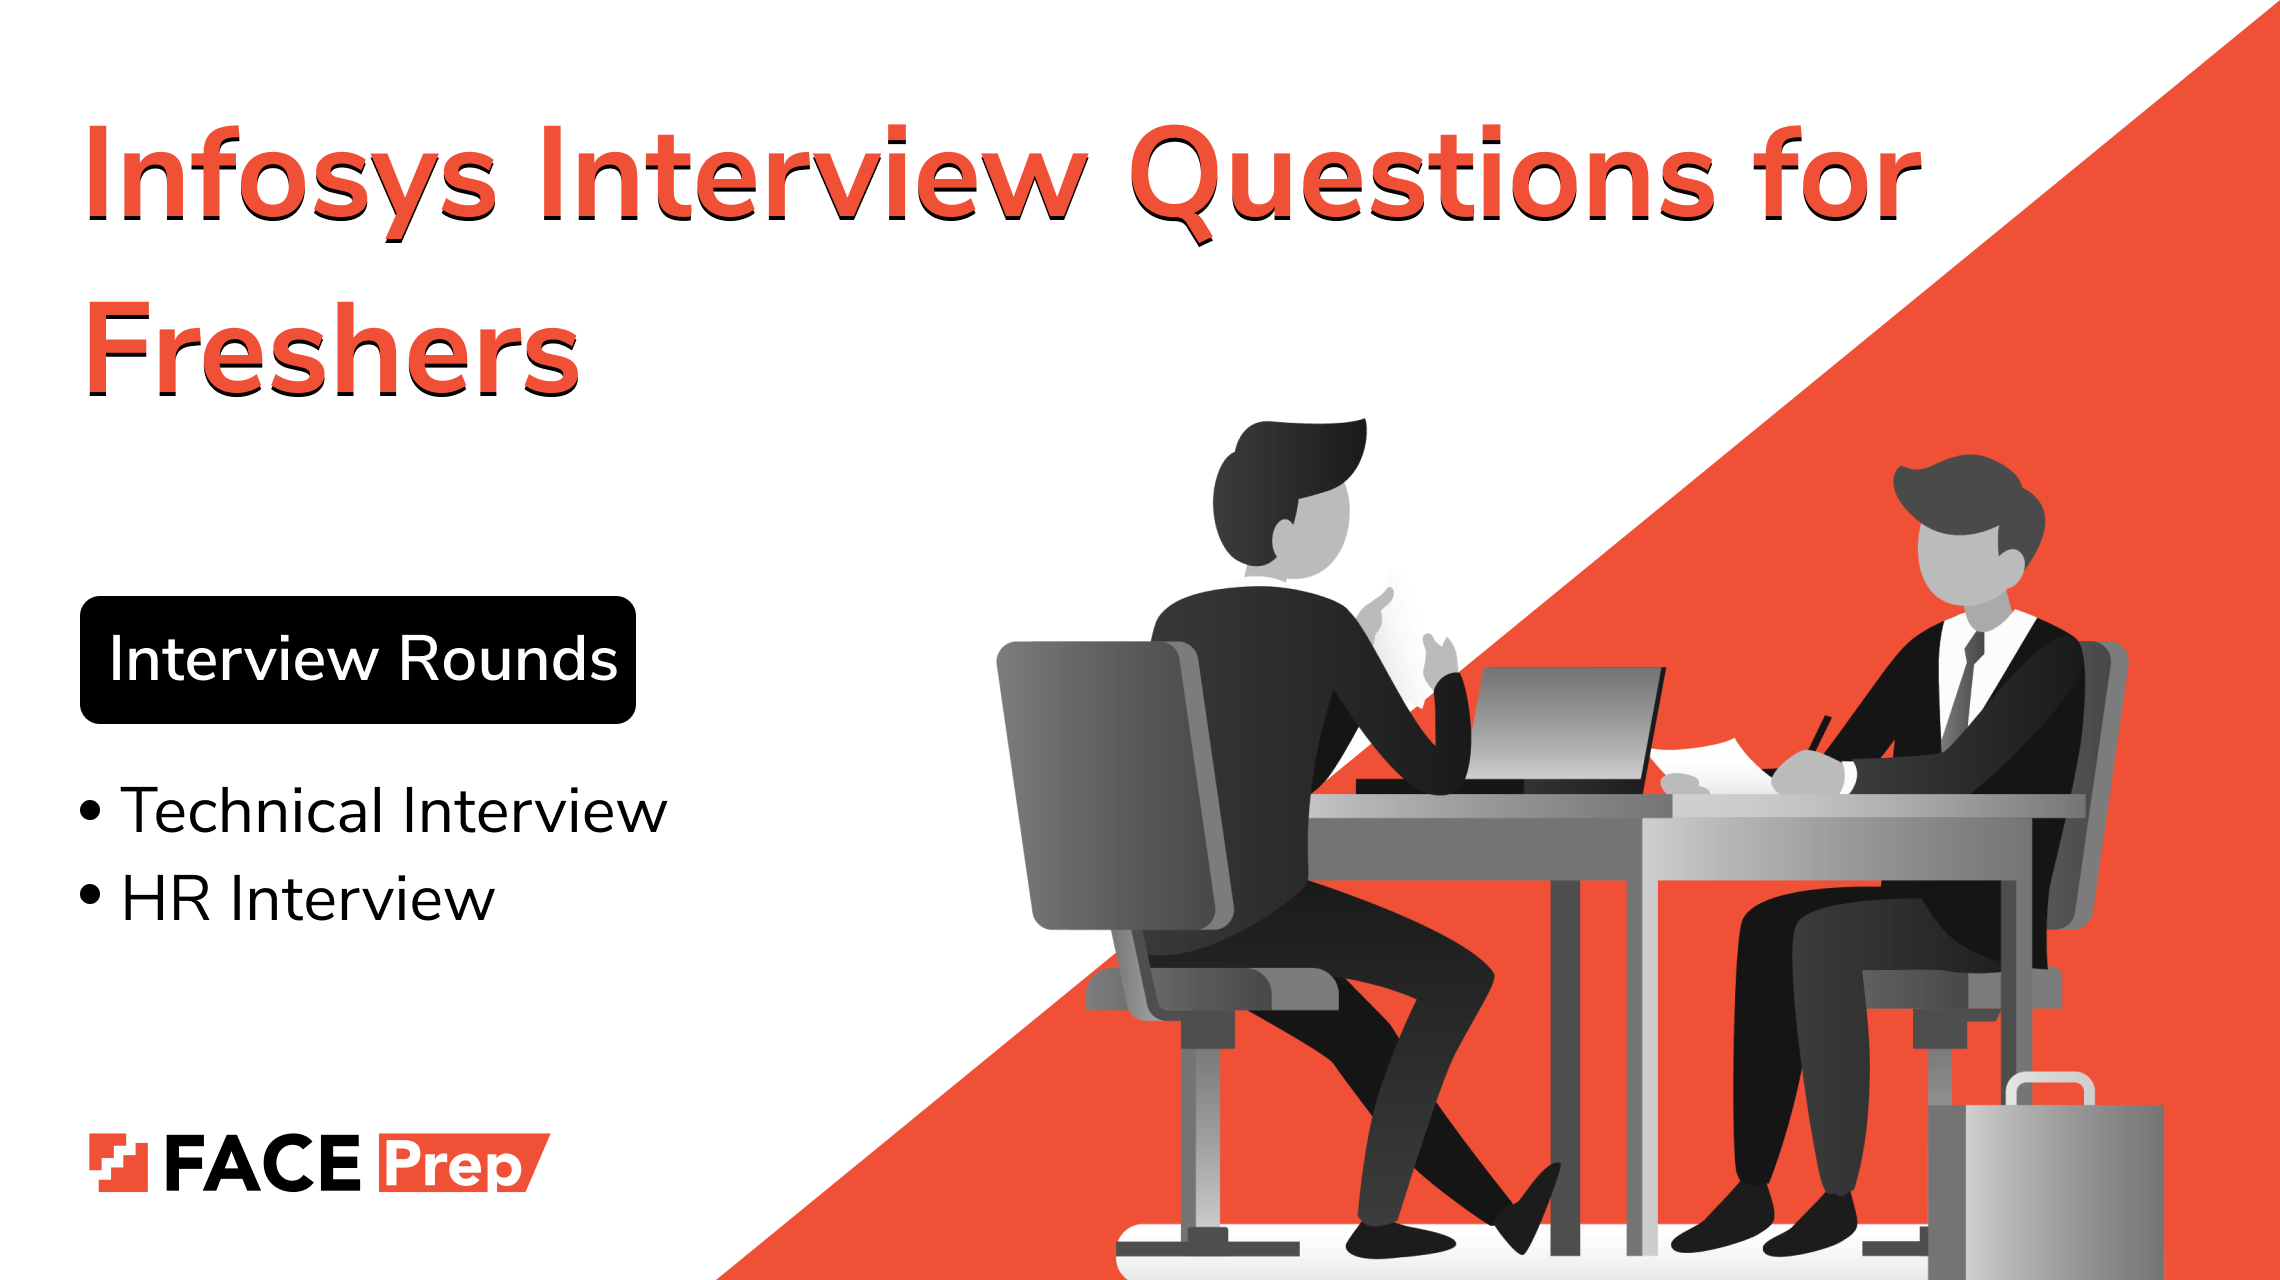 latest infosys interview questions